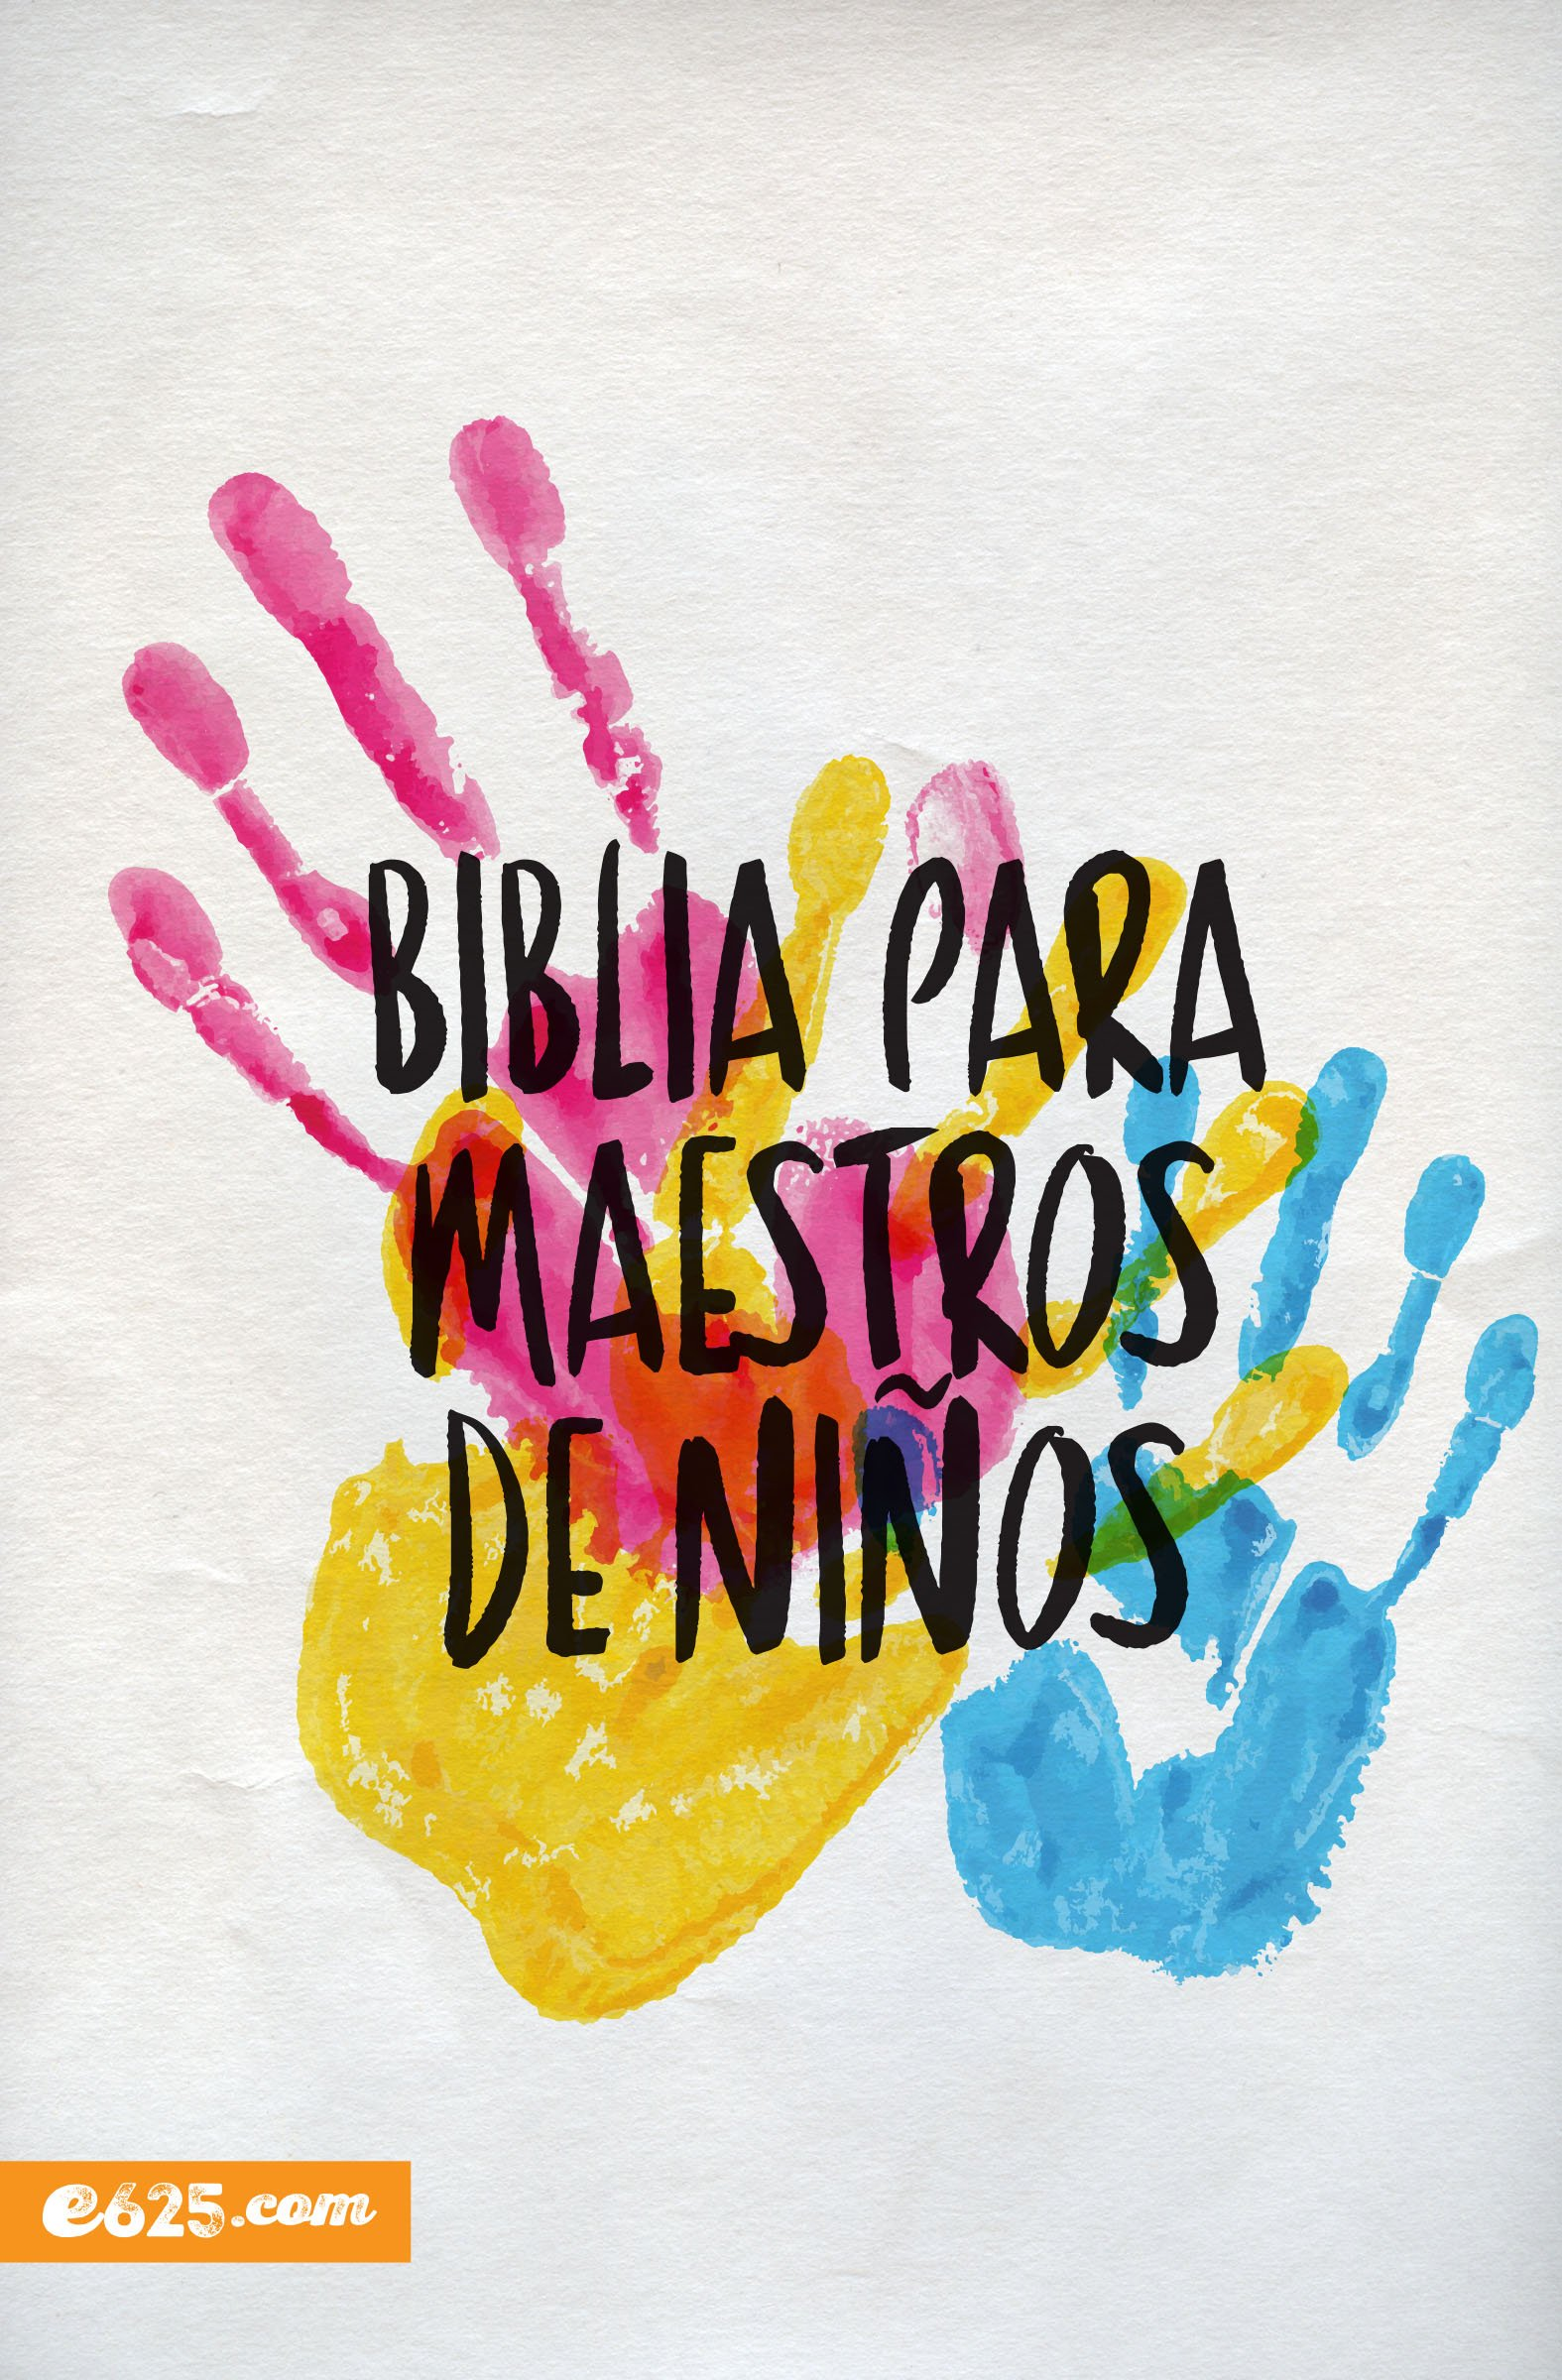 Biblia para maestros de niños (Spanish Edition): E625: 9781946707024: Amazon.com: Books